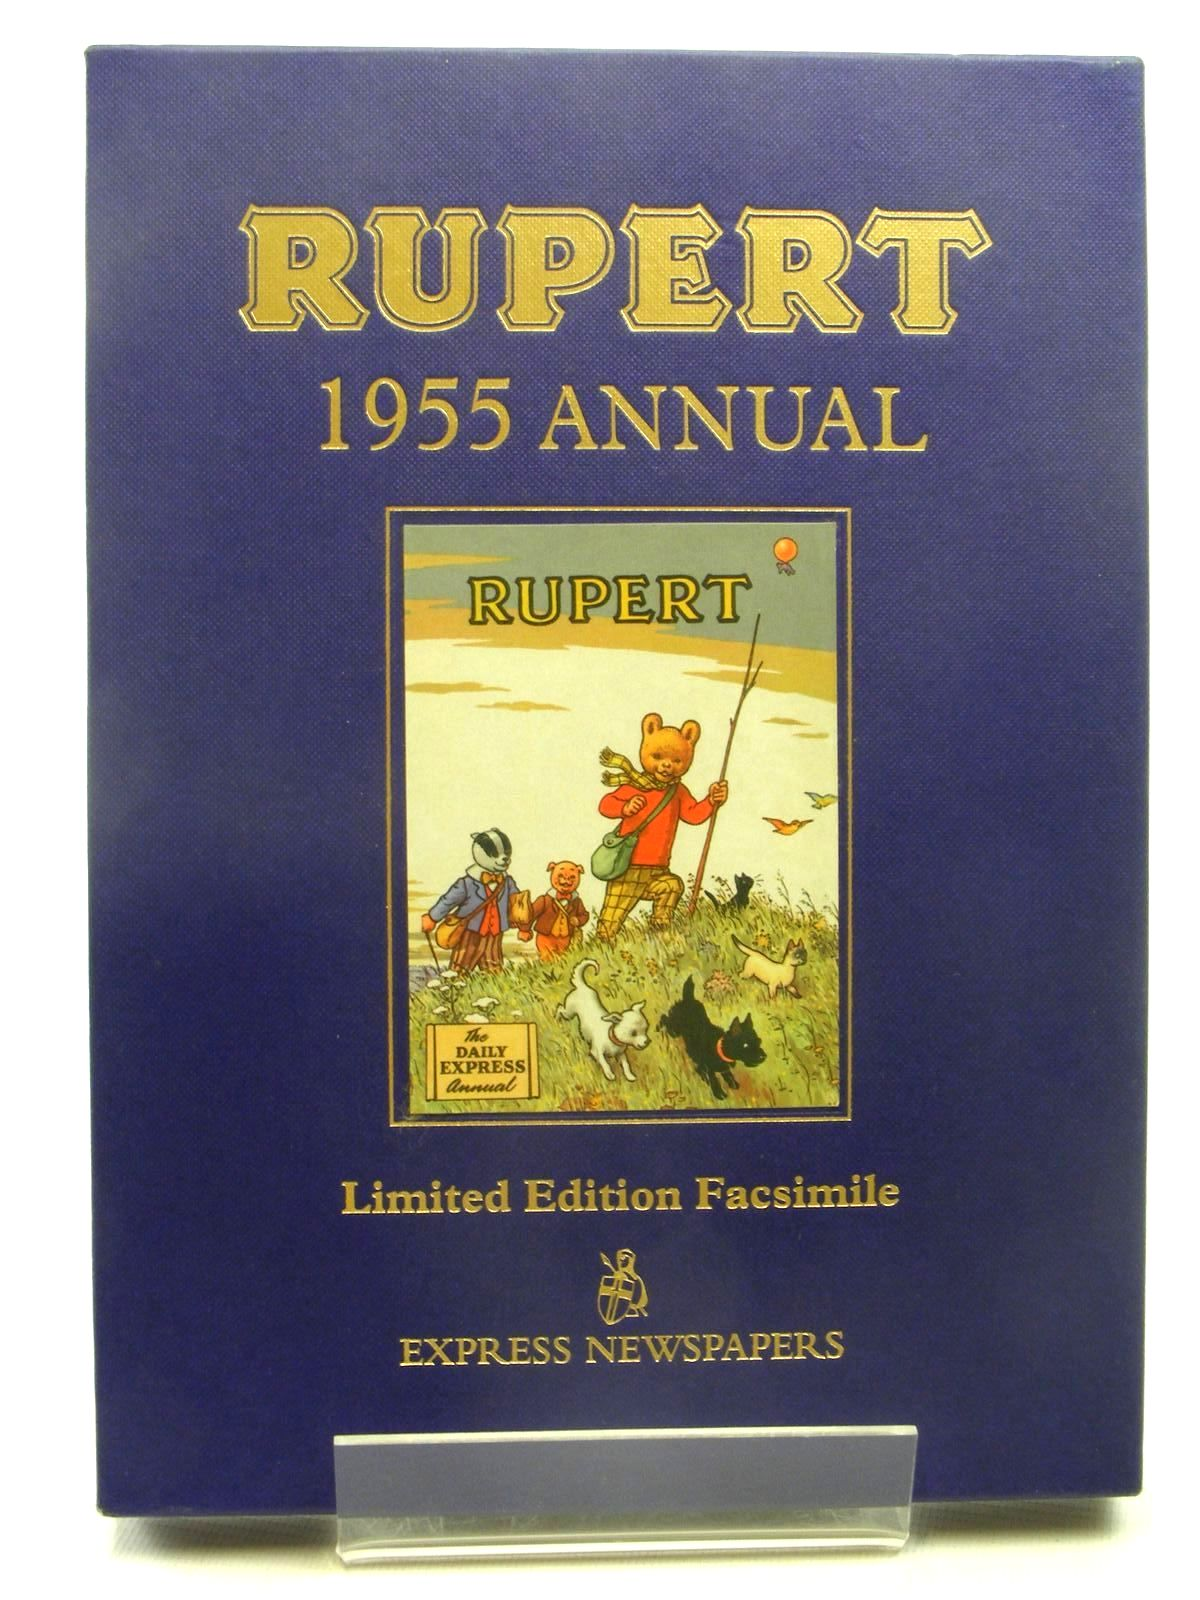 Cover of RUPERT ANNUAL 1955 (FACSIMILE) by Alfred Bestall